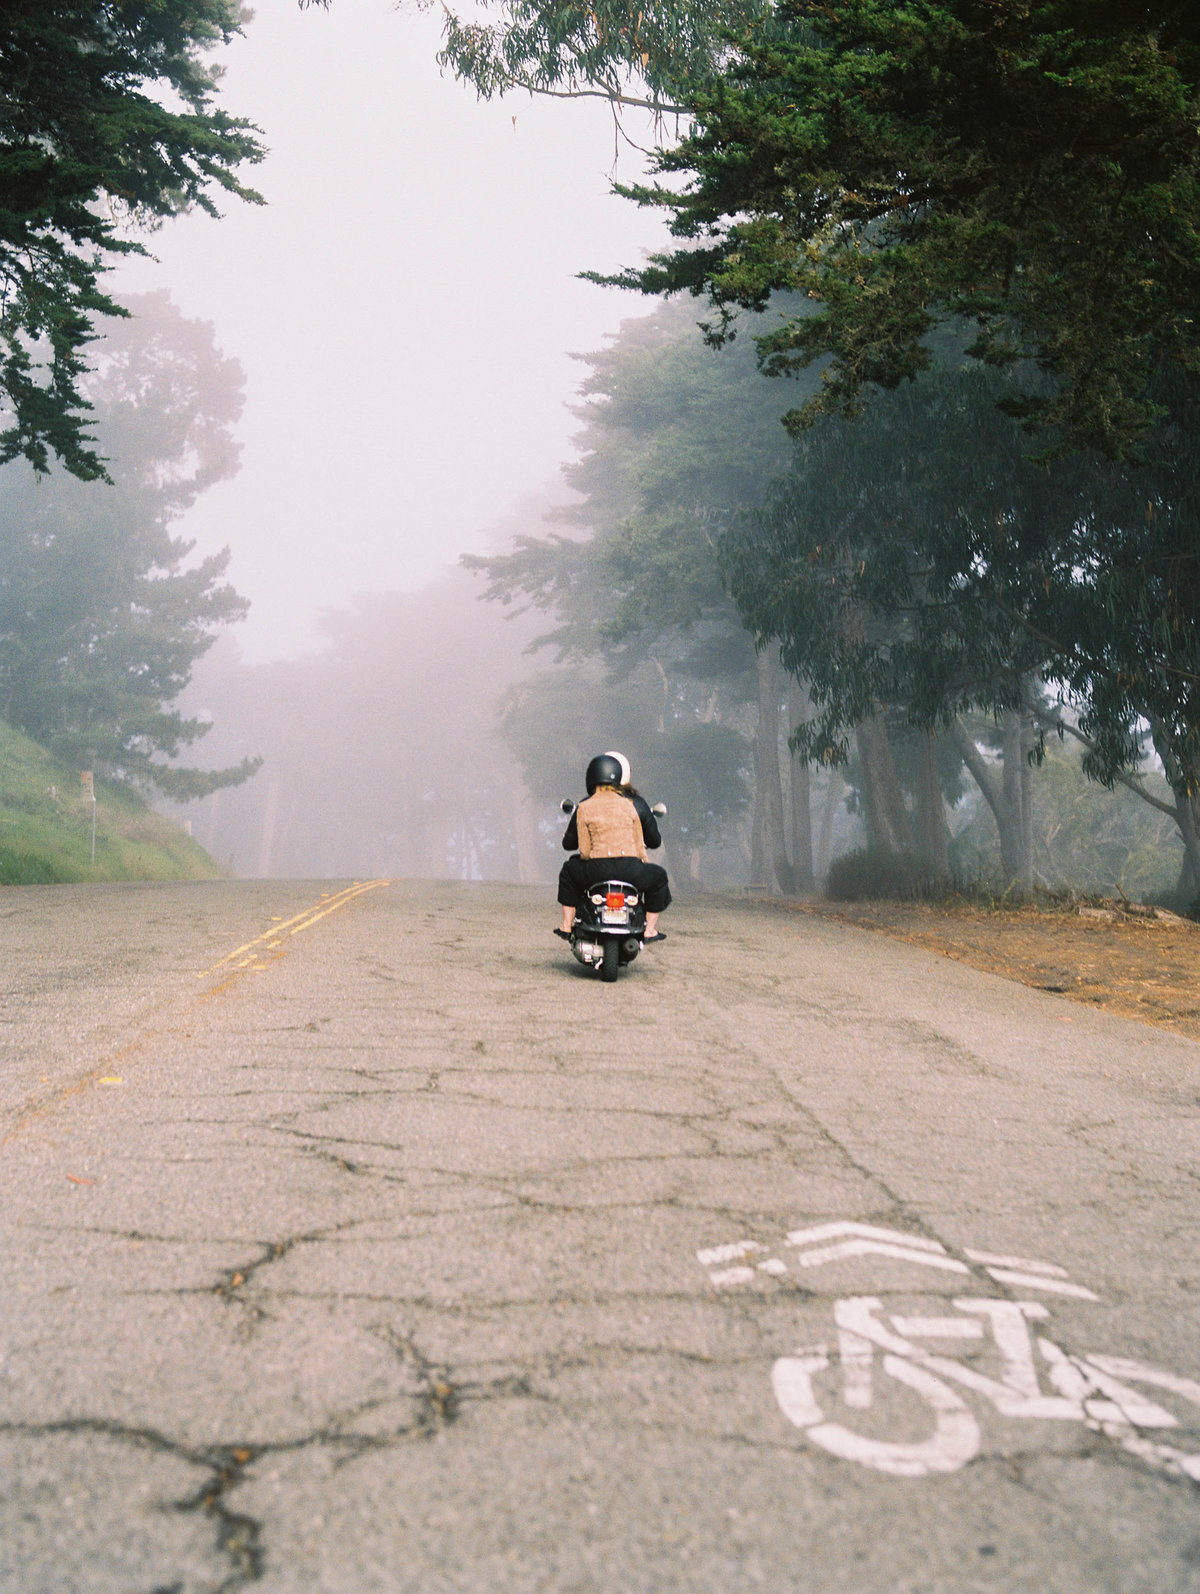 Couple riding vespa photo in San Francisco, California -vespa-fog-Lands End